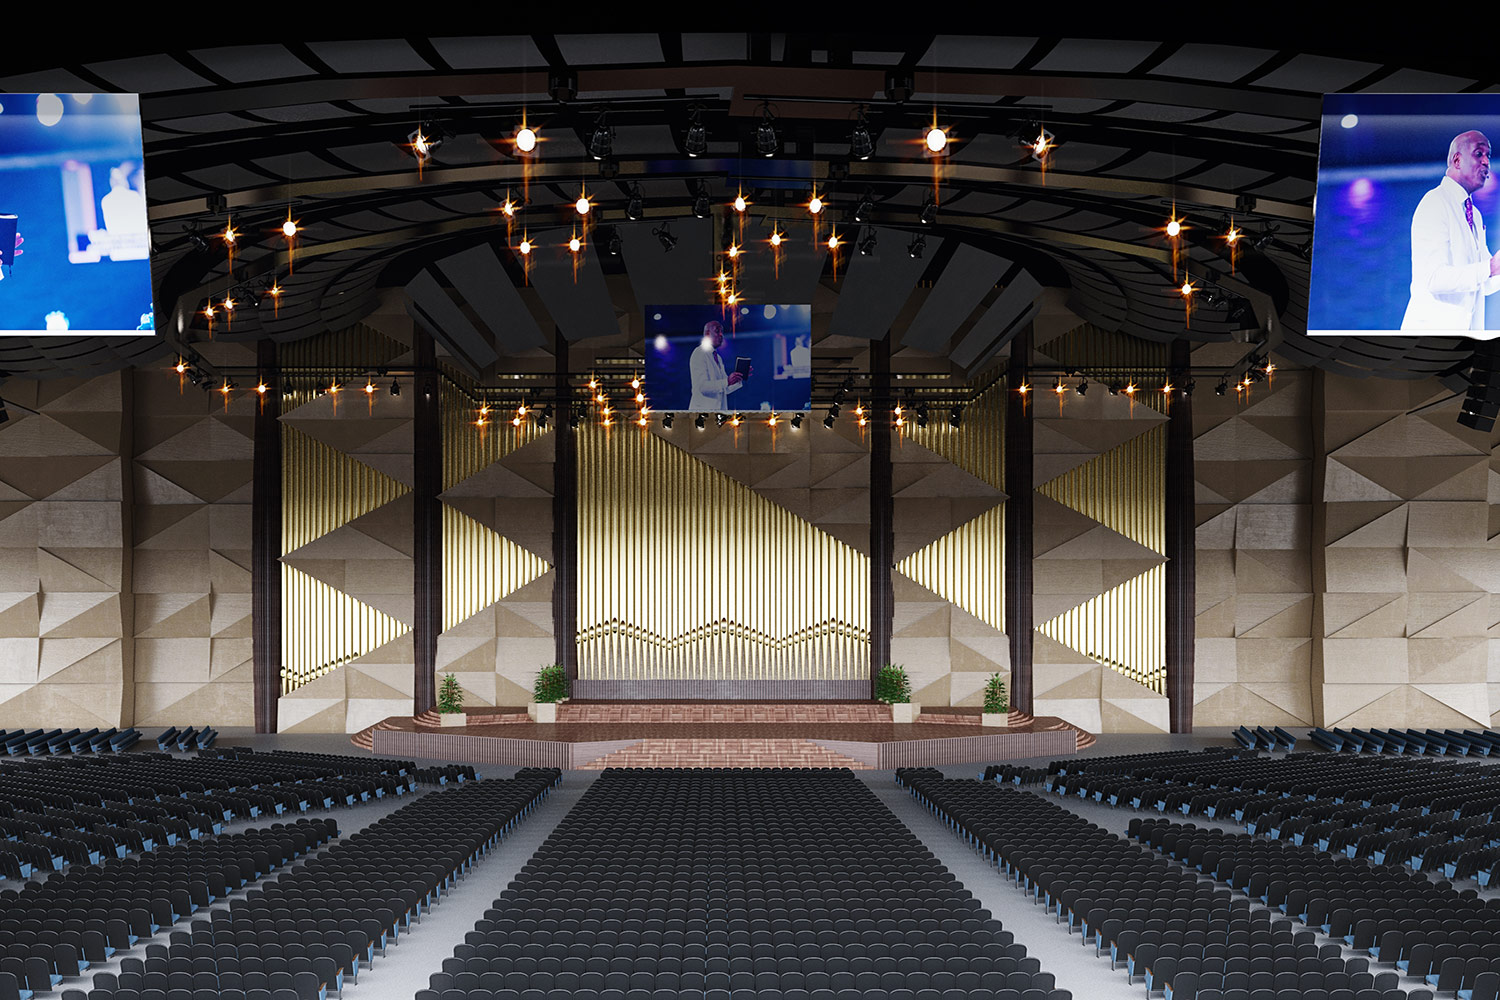 """Bishop David Oyedepo Salvation Ministries """"Hand of God"""". WSDG brought to supervise the acoustic design and design professional audio and video production facilities for the worship center. Main Auditorium Render."""